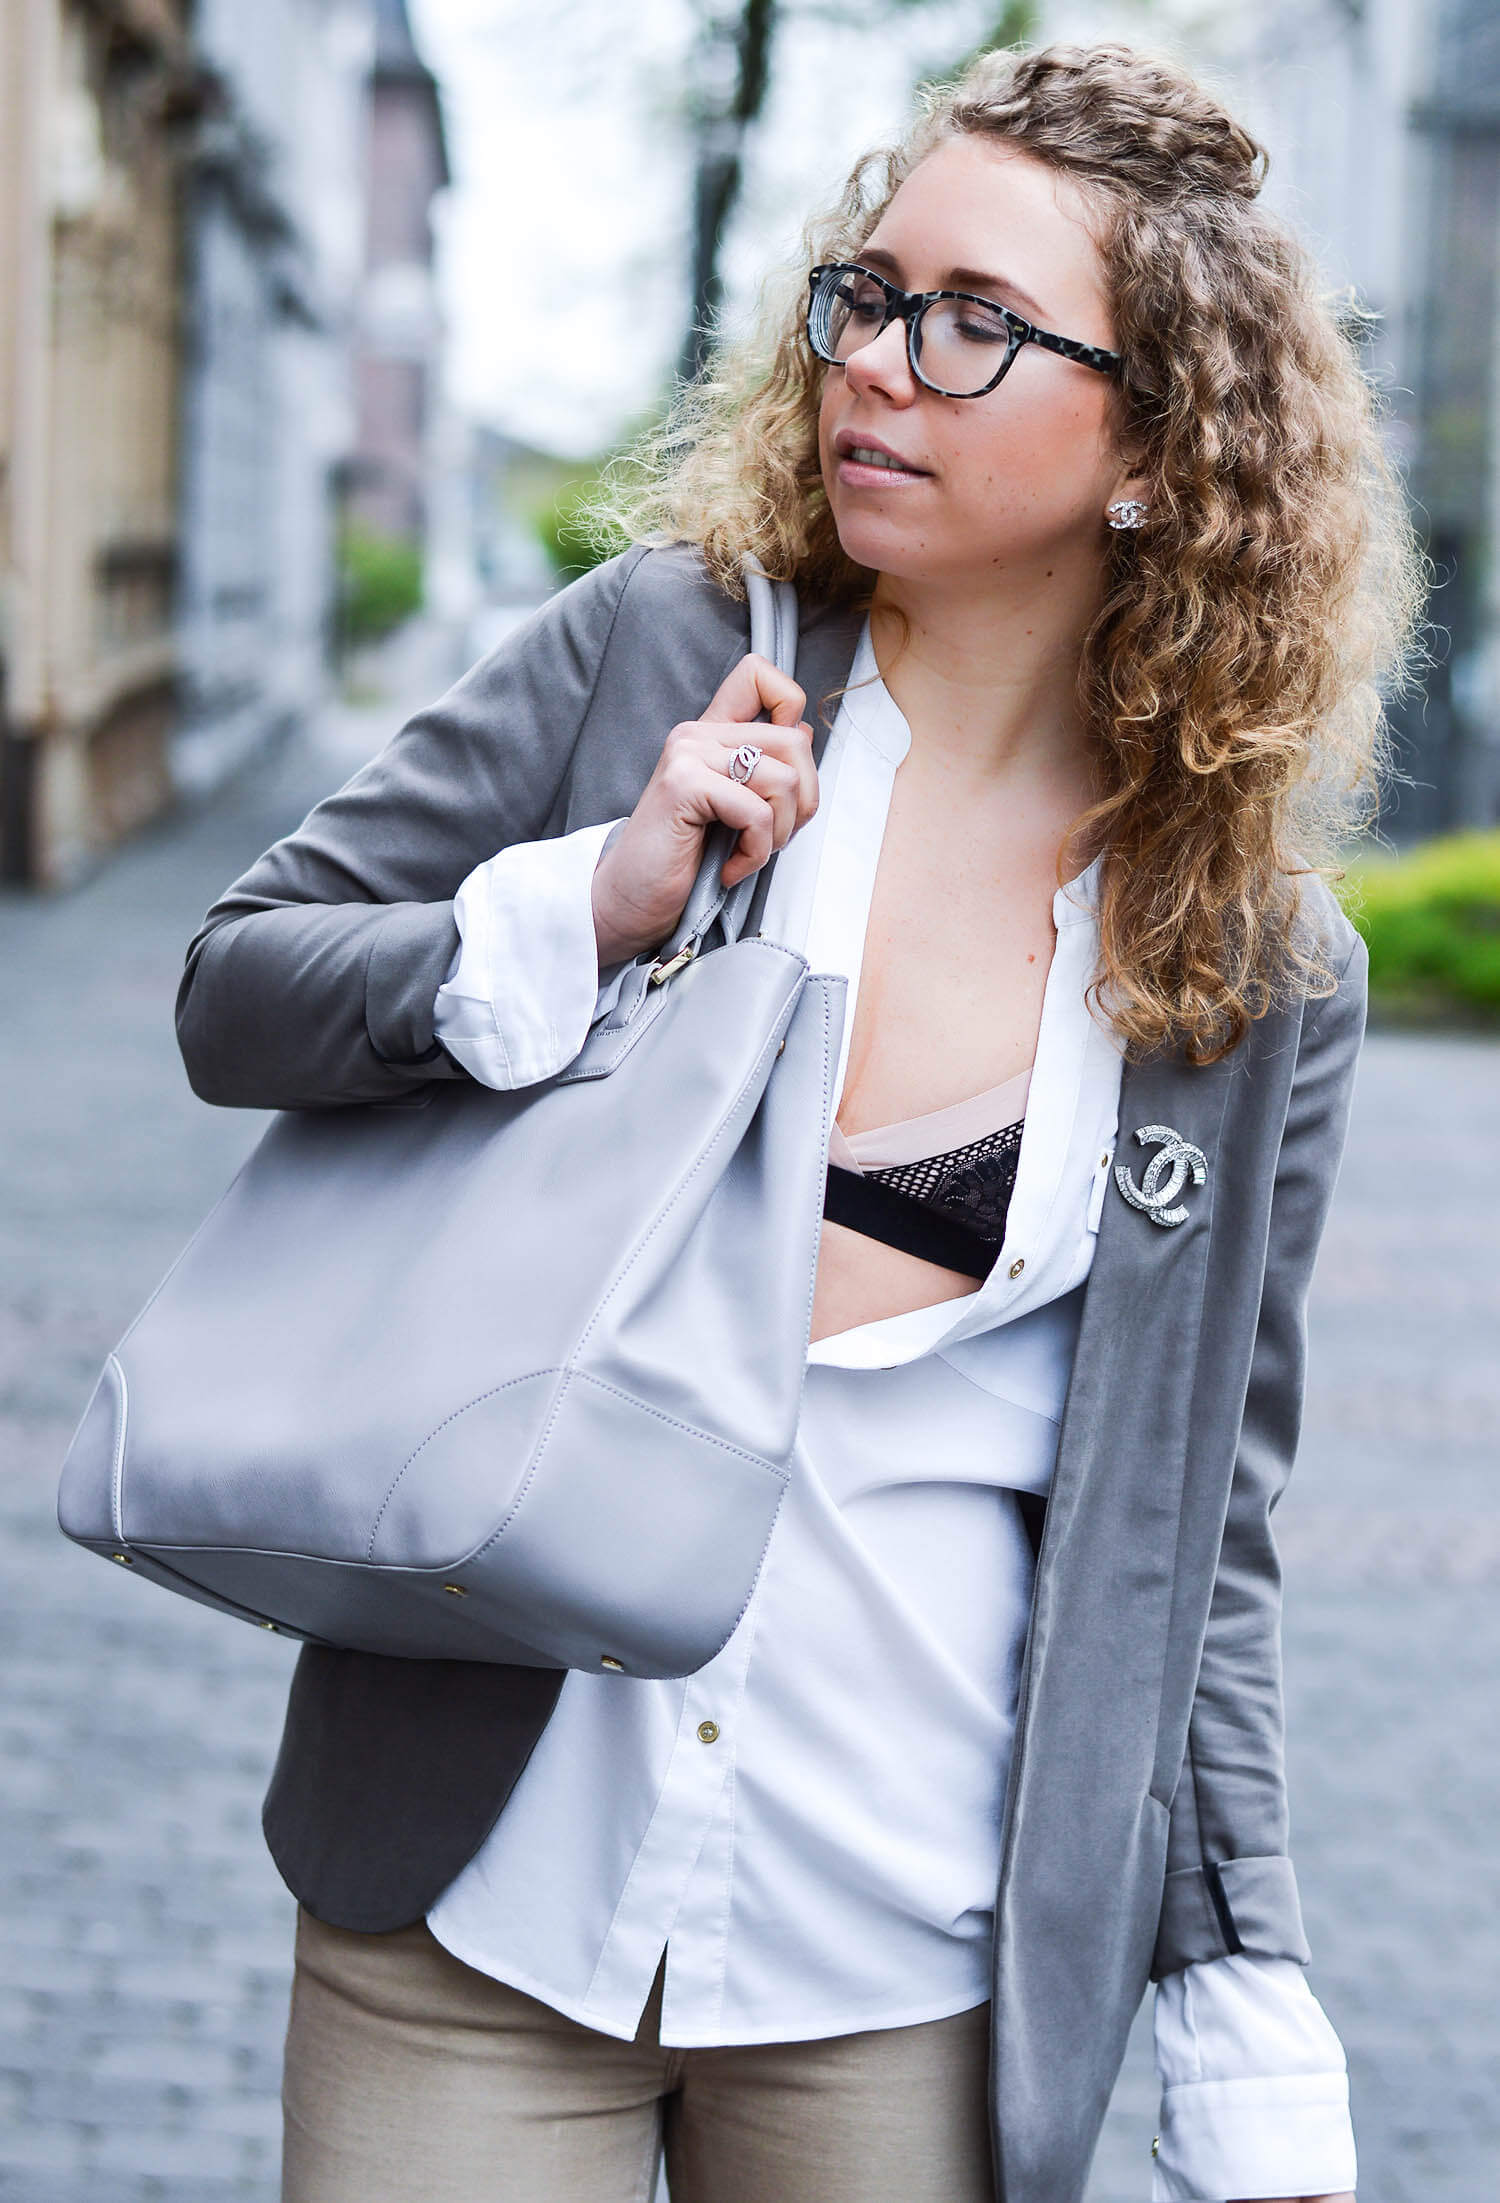 Kationette-fashionblog-nrw-Outfit-Beige-Blouse-Bra-Tory-Burch-business-Bag